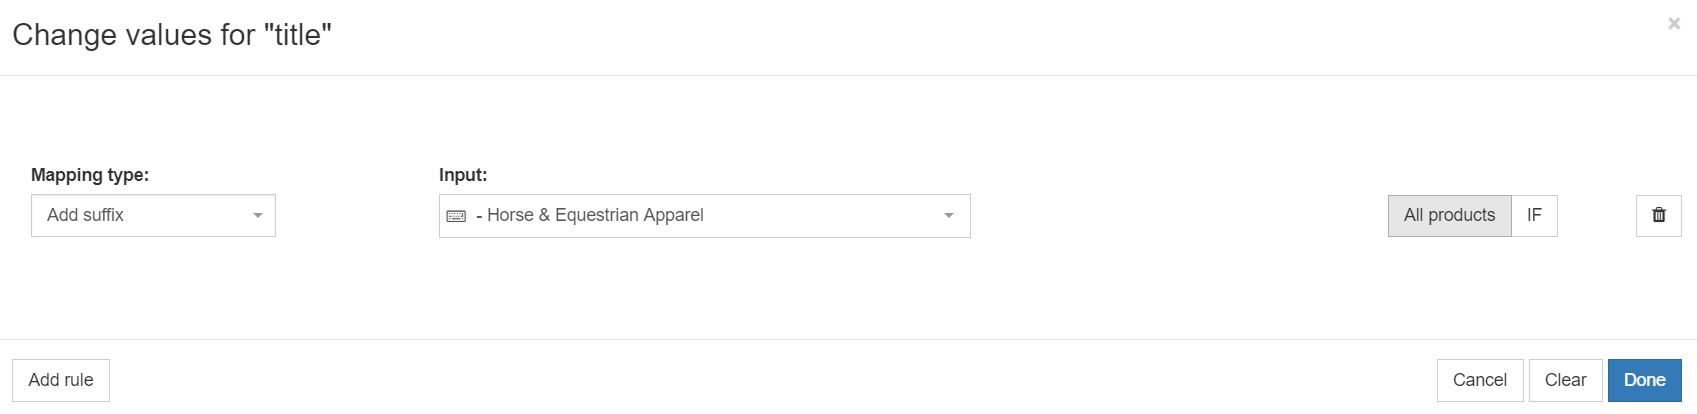 optimizing title in a google shopping feed